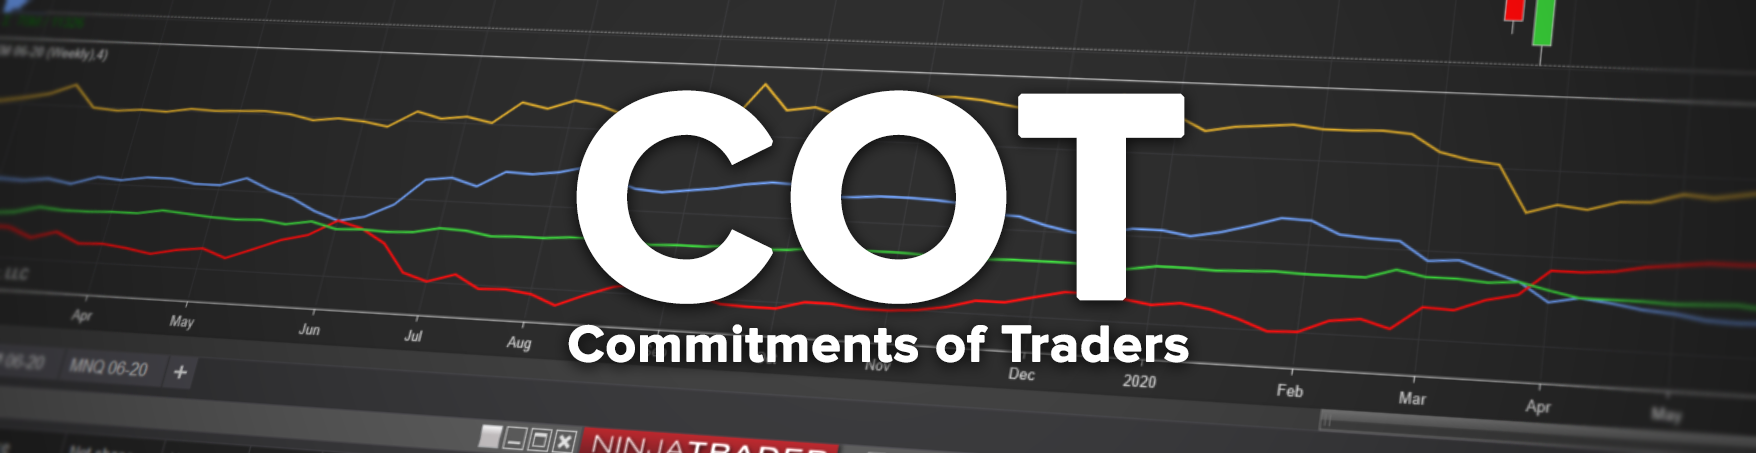 COT indicator Commitment commitments traders